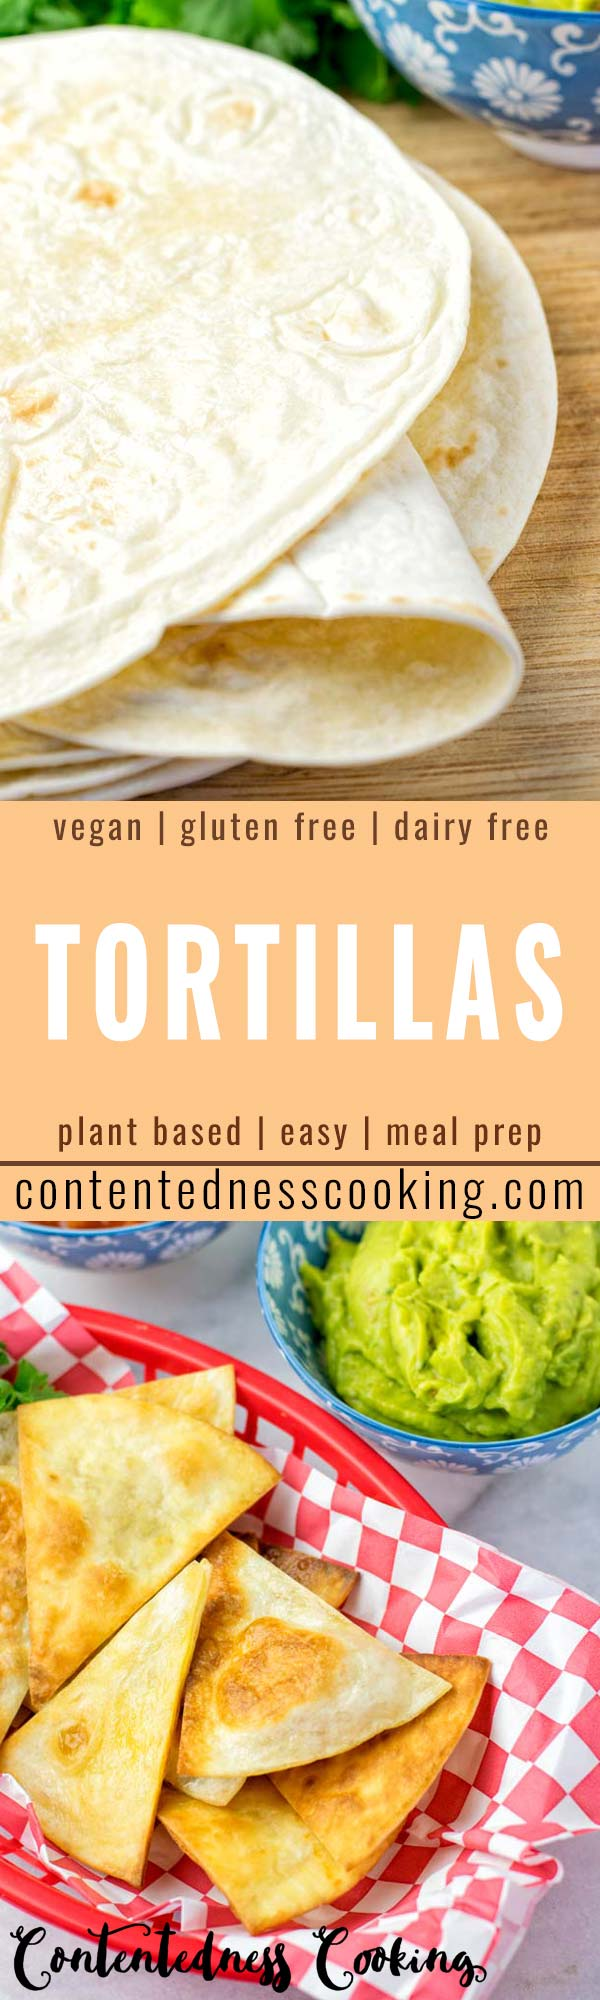 These Gluten Free Tortillas are made with only 2 ingredients and are vegan, too. Once you've tried these you expereince the easiest way to make homemade tortillas. A keeper that the whole family will love. Perfect for burritos, warps, any fillings, lunch, dinner, meal prep. #vegan #dairyfree #glutenfree #vegetarian #tortillas #homemade #dinner #lunch #budgetmeals #mealprep #worklunchideas #contentednesscooking #tacofilling